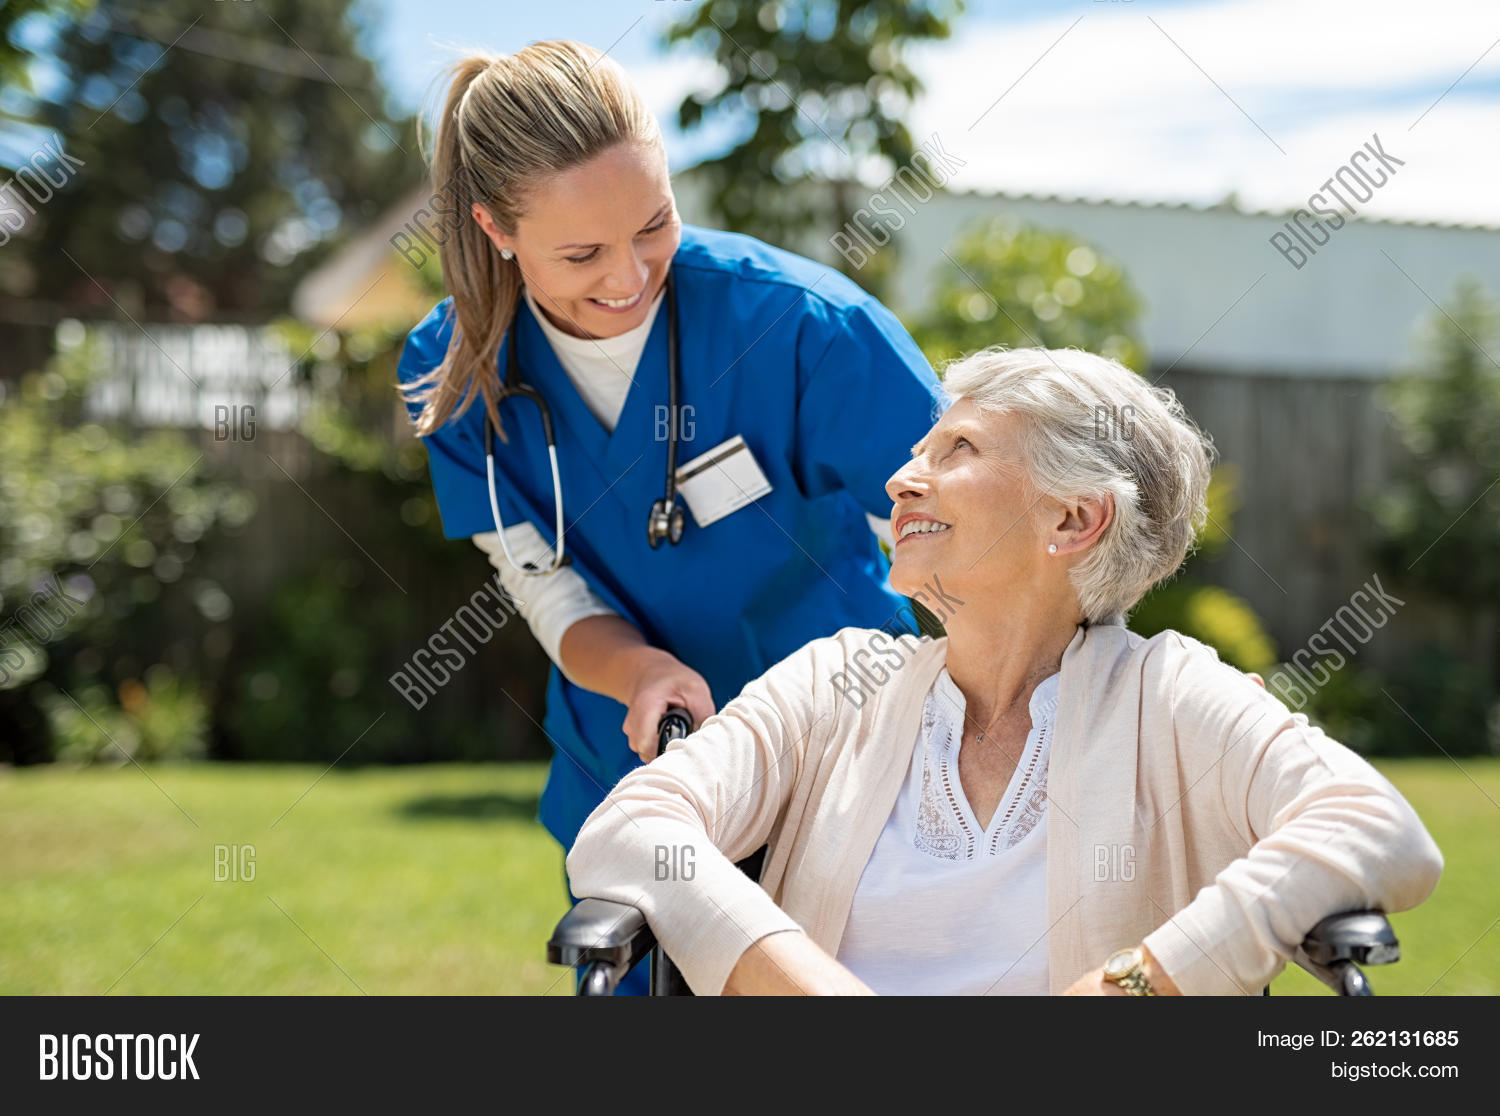 Nurse taking care of old woman in wheelchair outdoor. Friendly doctor caring about elderly disabled